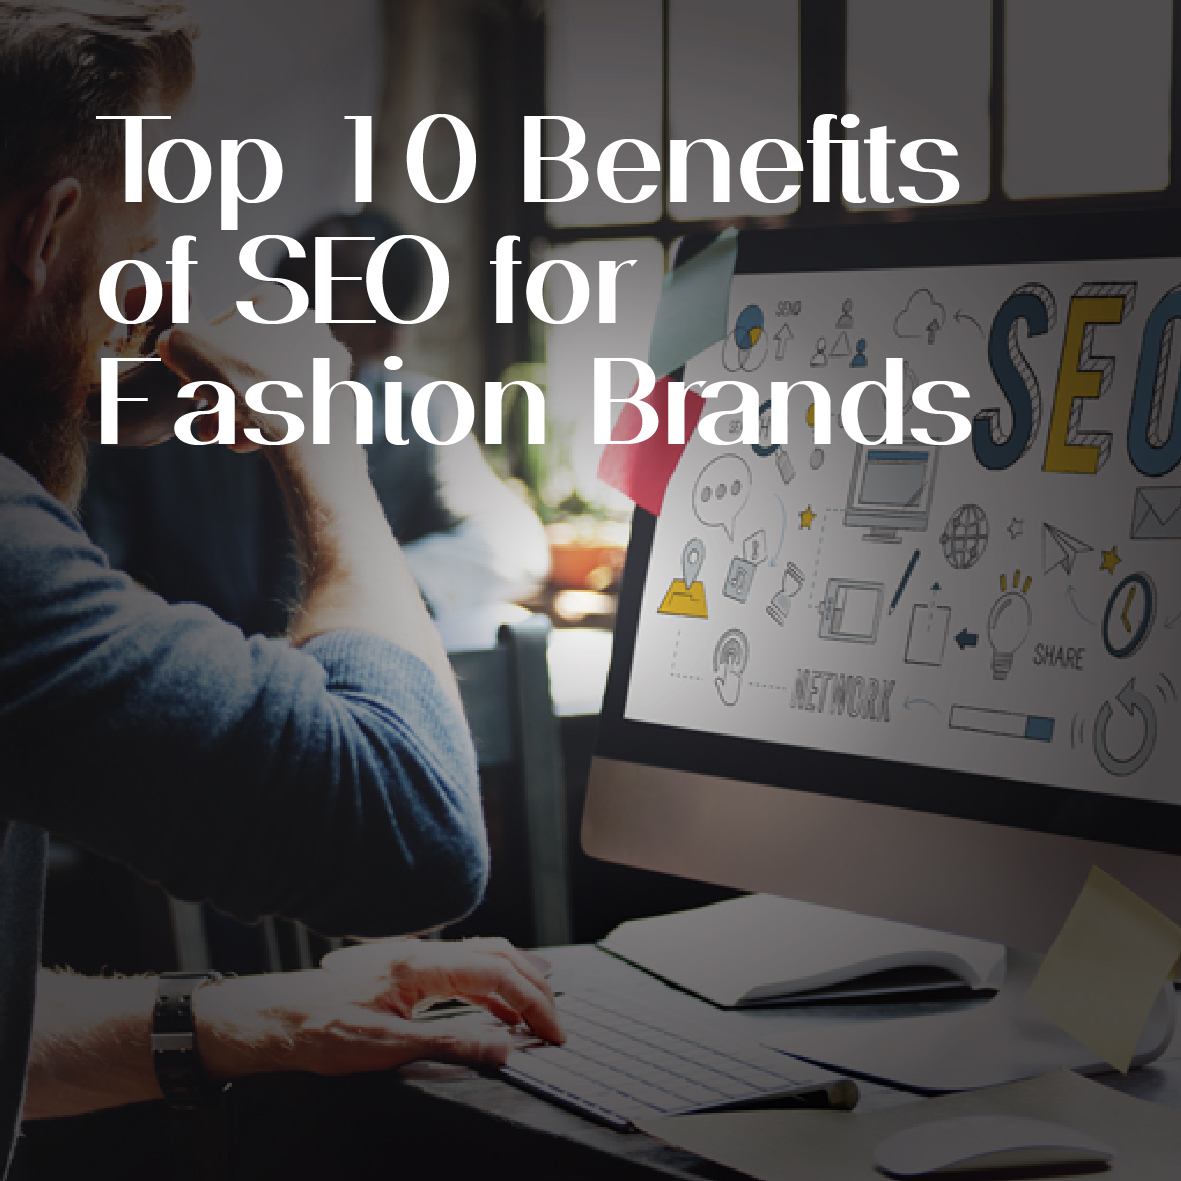 Top 10 Benefits of SEO for Fashion Brands